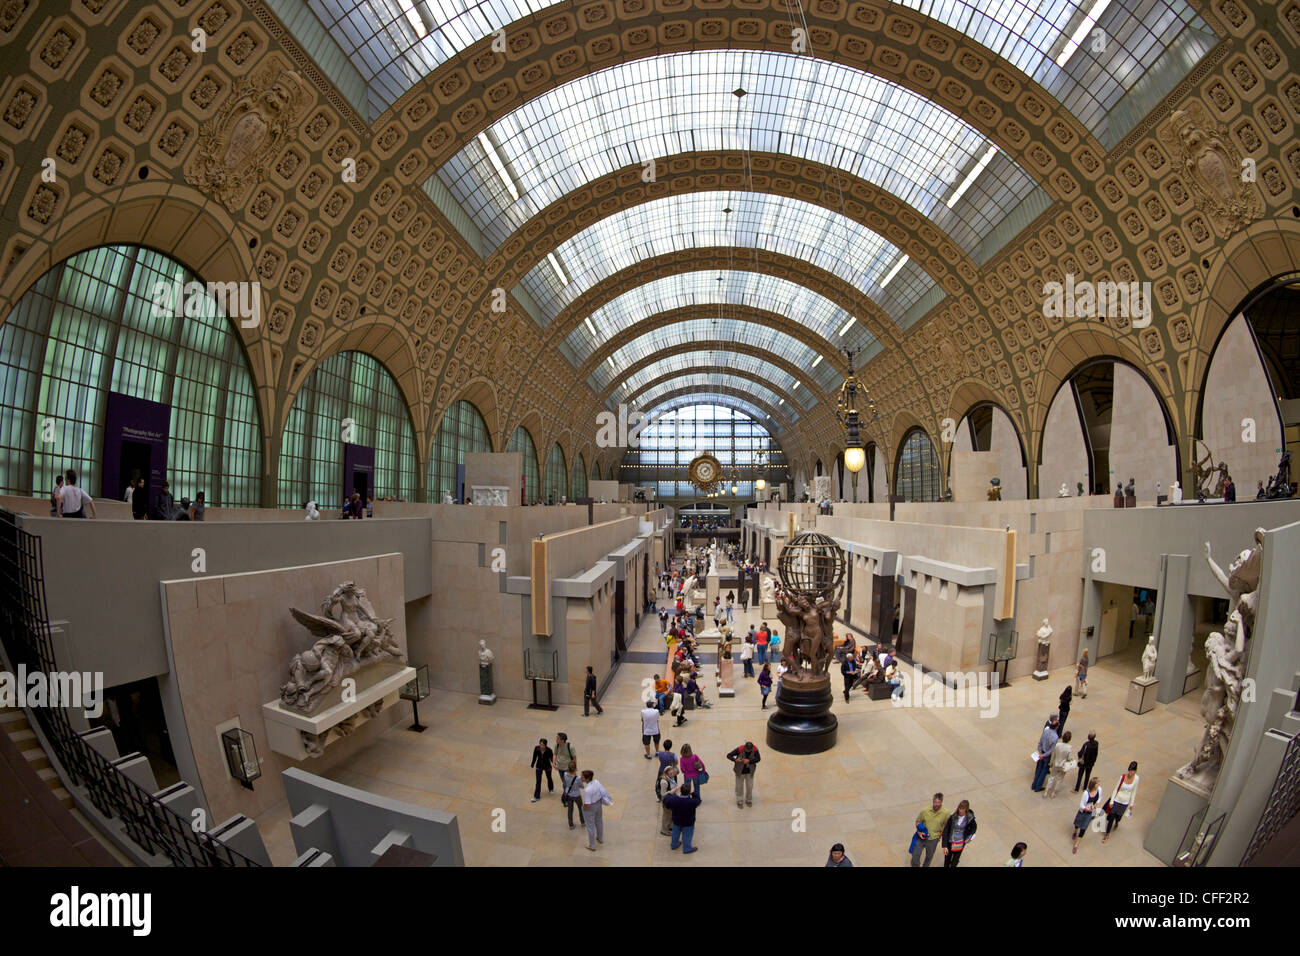 Great Hall of the Musee D'Orsay Art Gallery and Museum, Paris, France, Europe - Stock Image